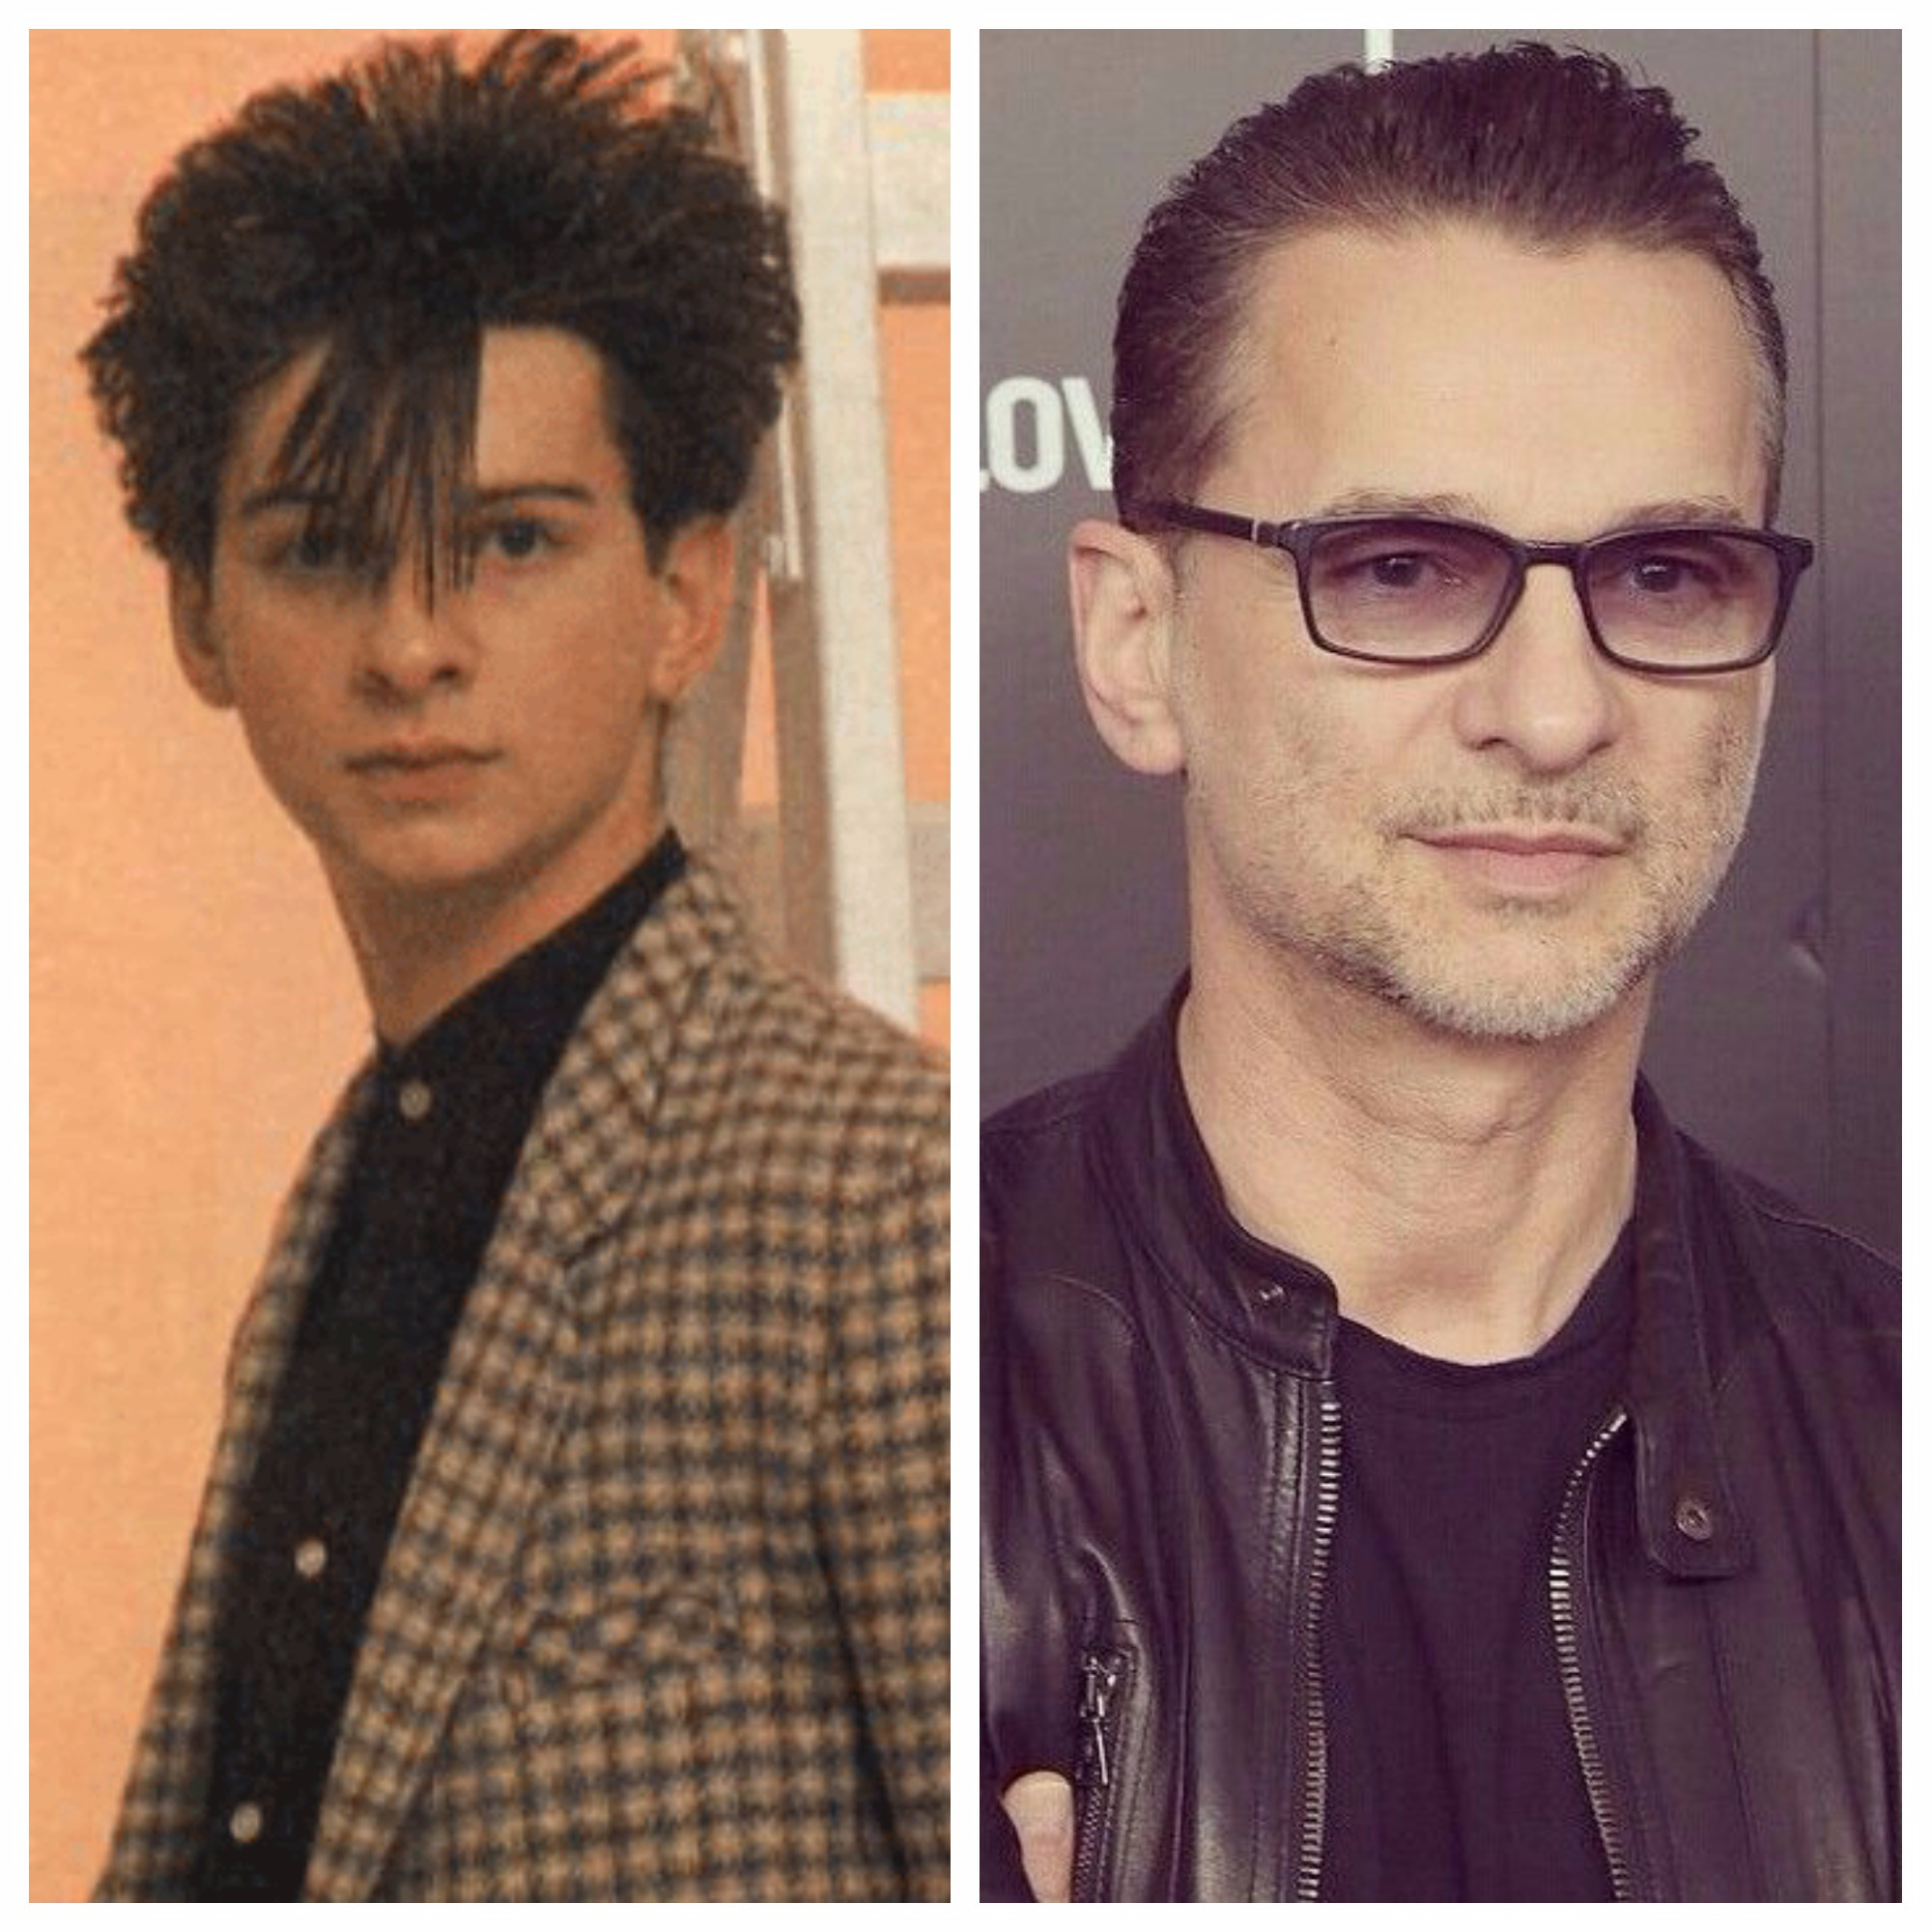 Dave Gahan 2017, What does Depeche Mode look like now, Depeche Mode 2017, Before and After depeche mode, celebs, Music